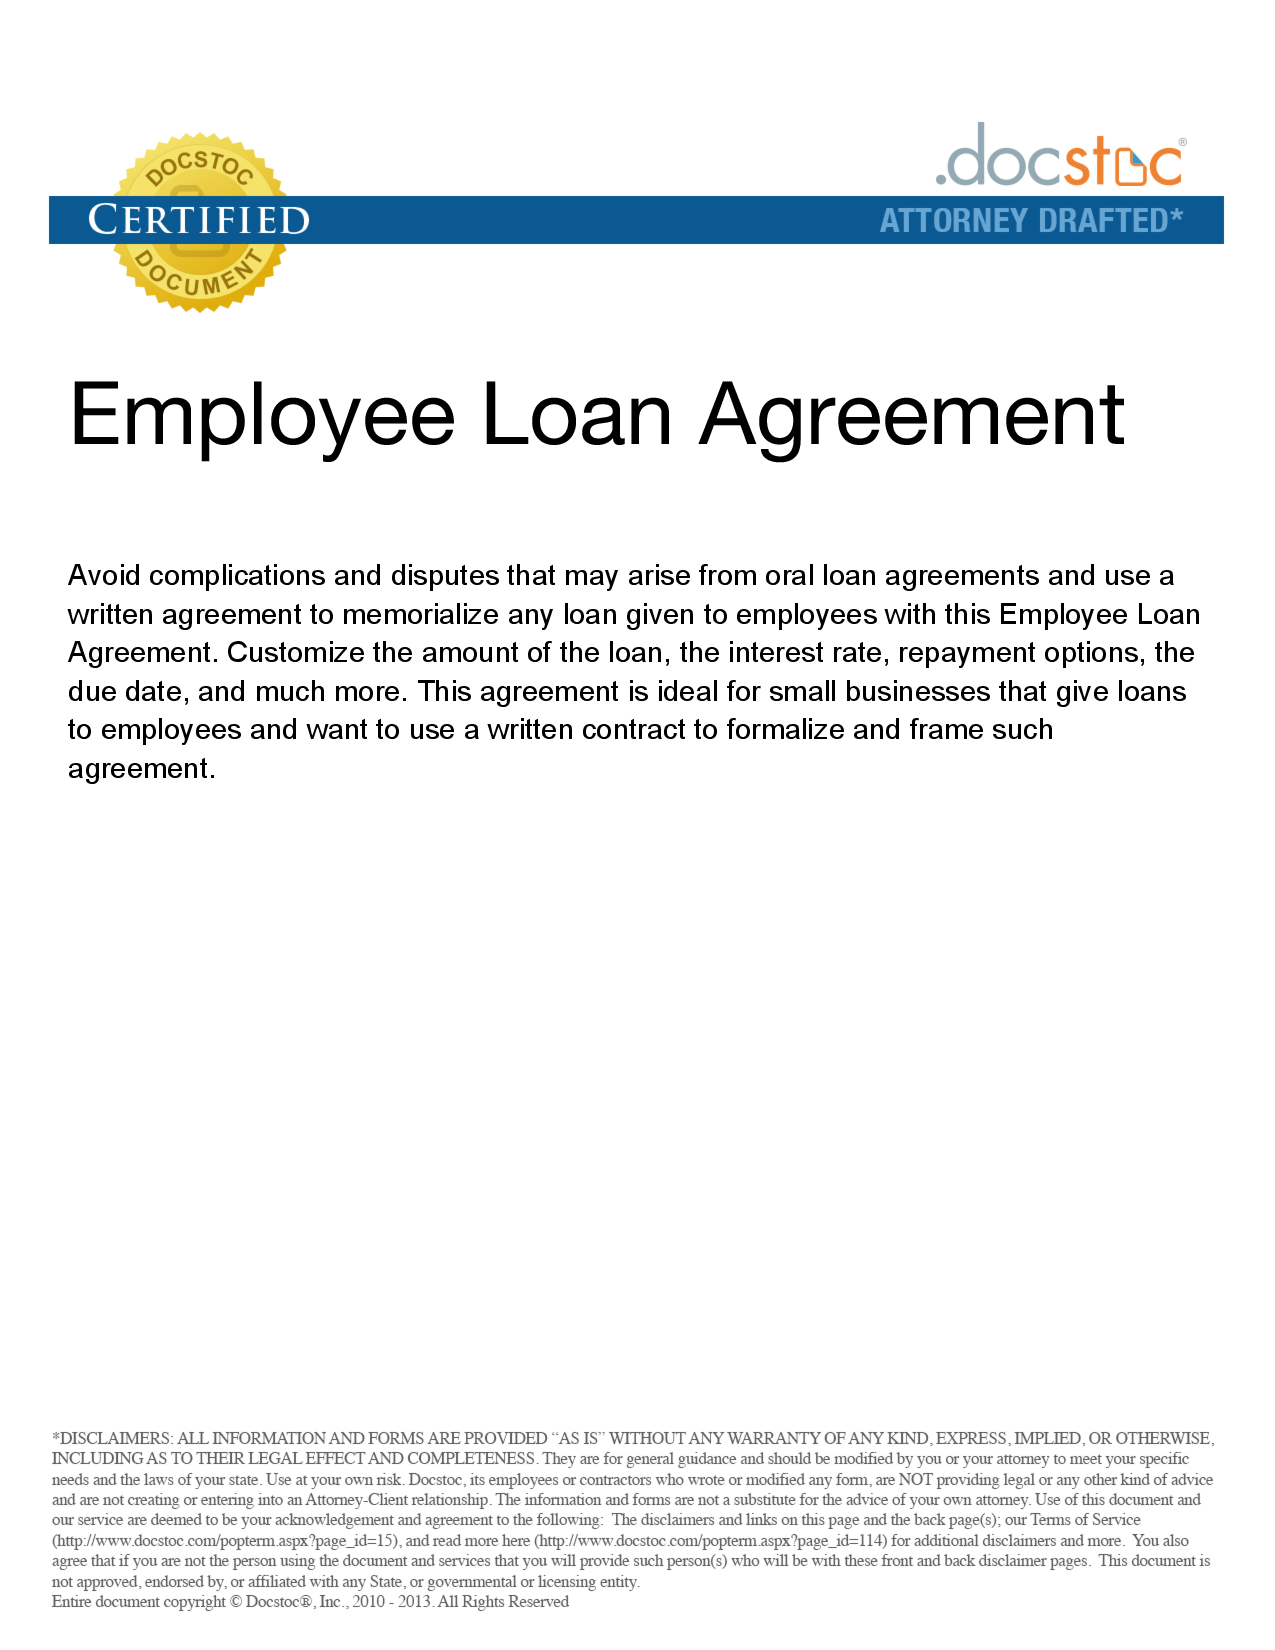 Personal Loan Repayment Agreement Template